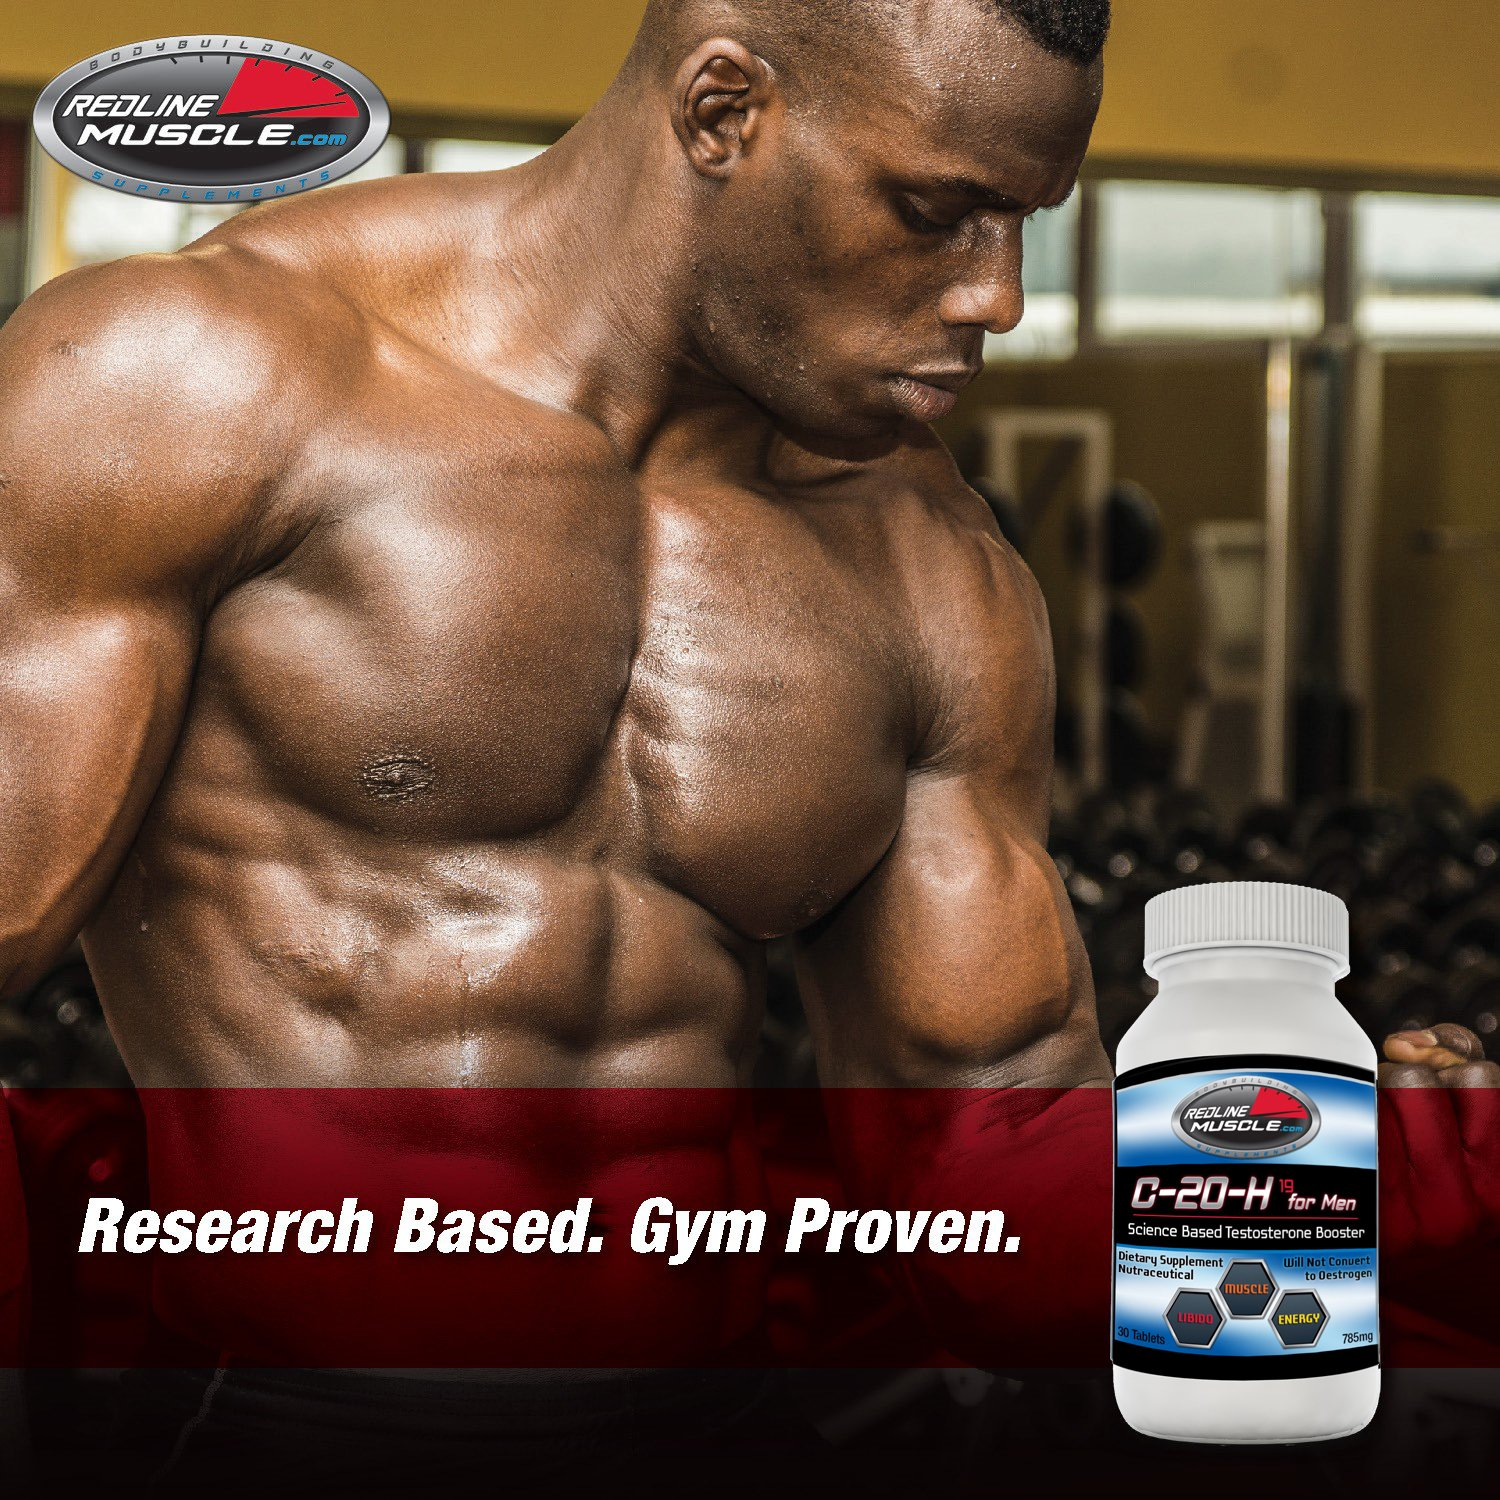 Amazon.com: C-20-H Voted Best Testosterone Booster and ...